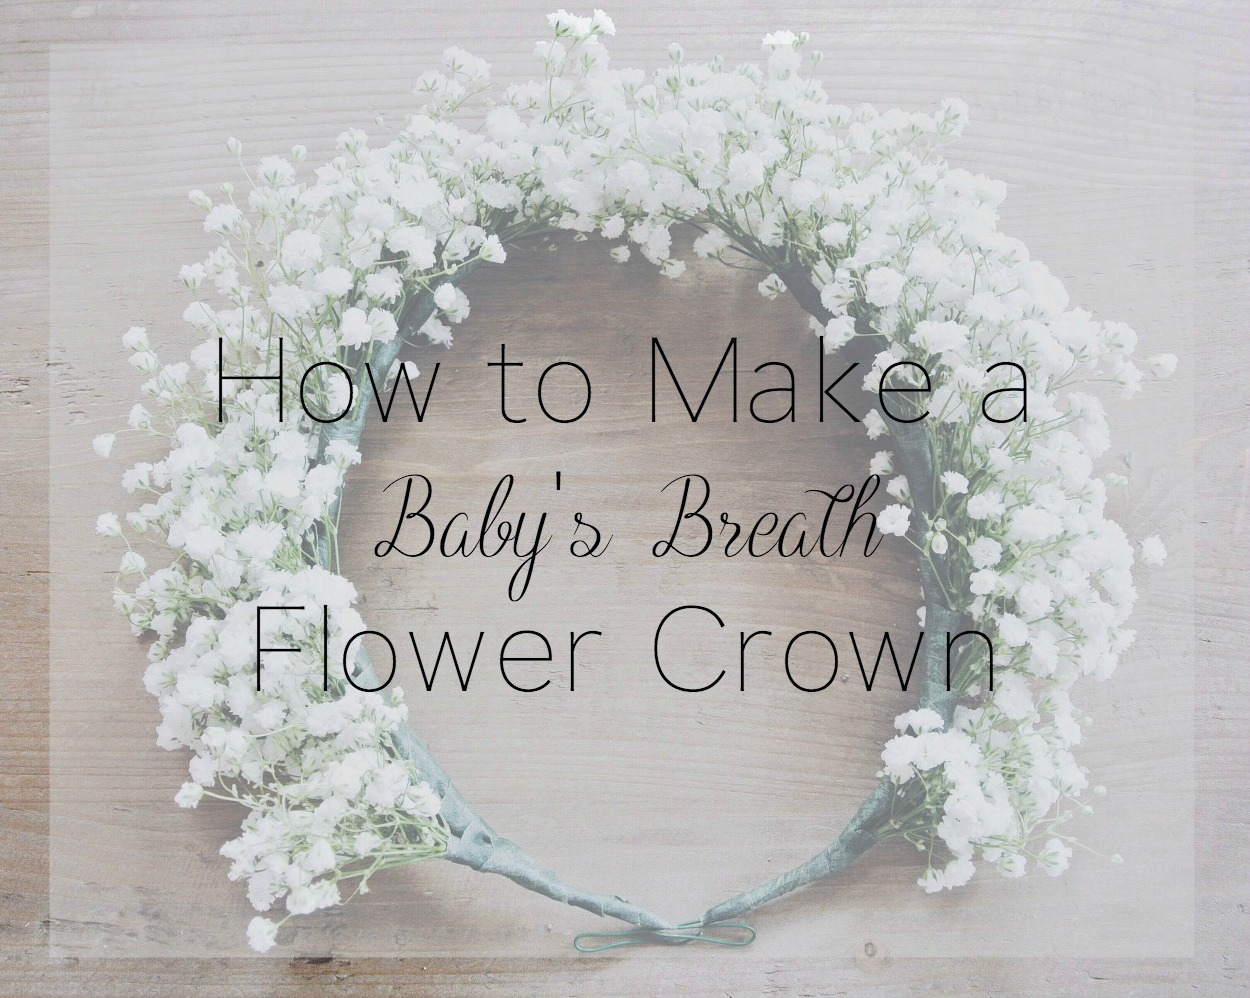 How to make a babys breath flower crown zoe with love how to make a babys breath flower crown dhlflorist Choice Image